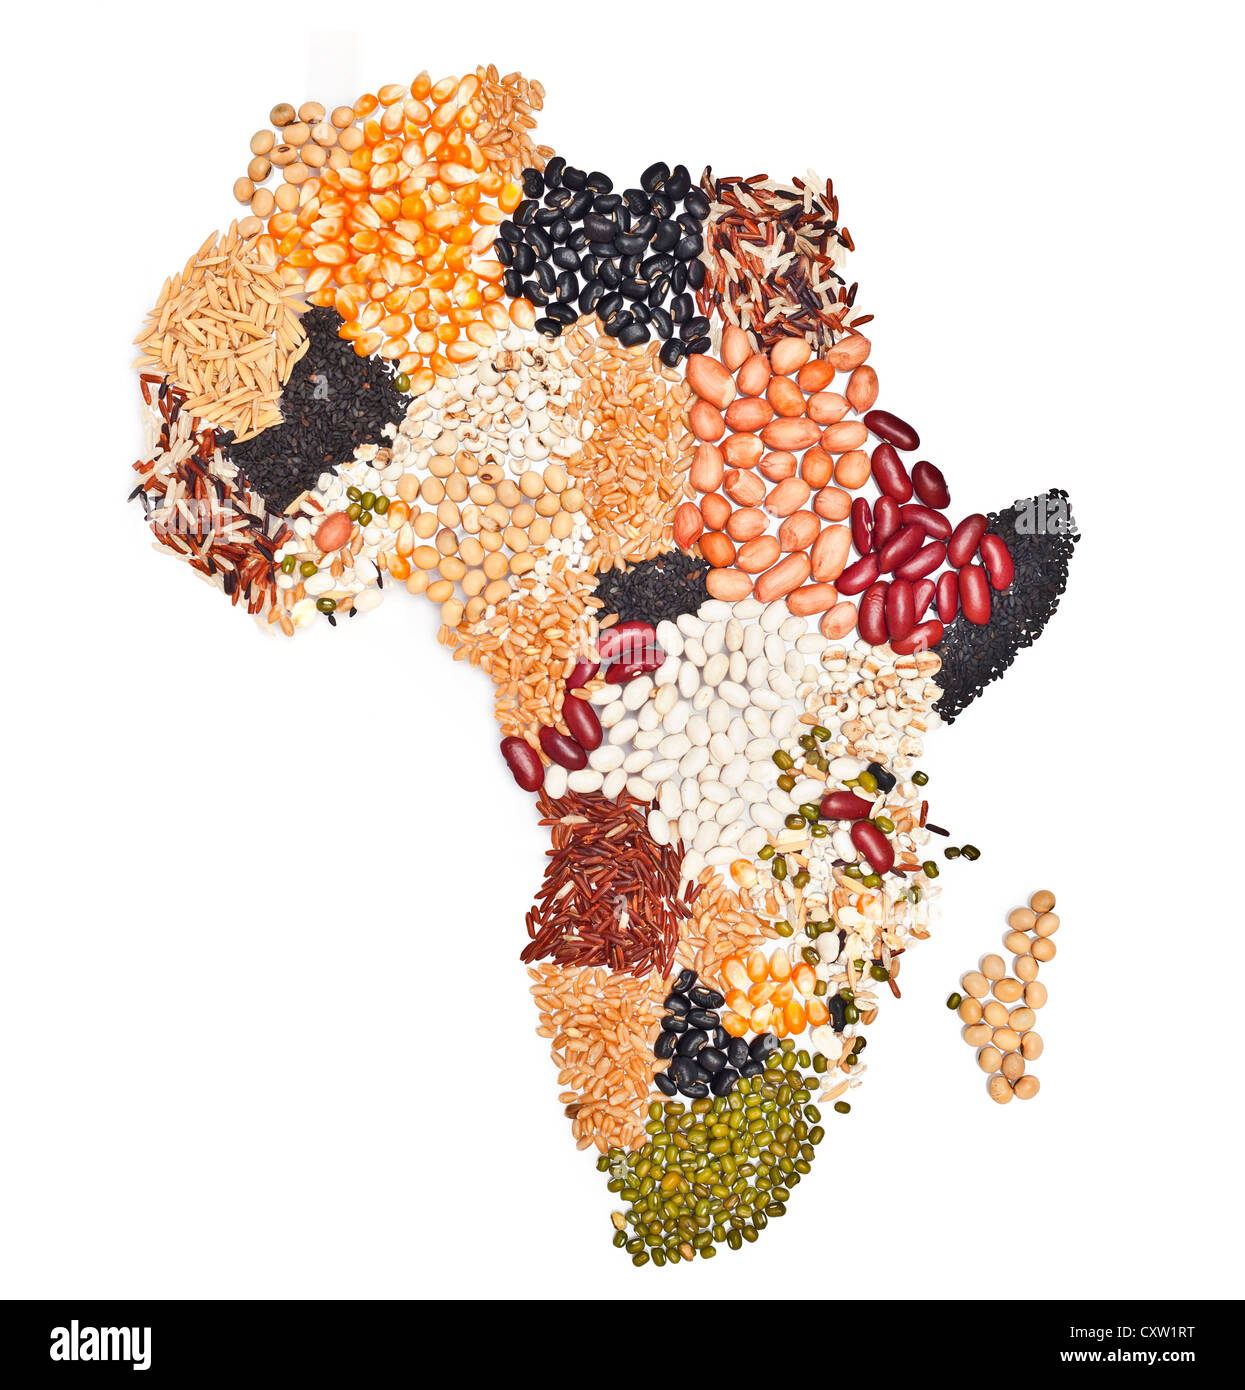 Africa Map Background.Africa Map Food On White Background Stock Photo 50952044 Alamy